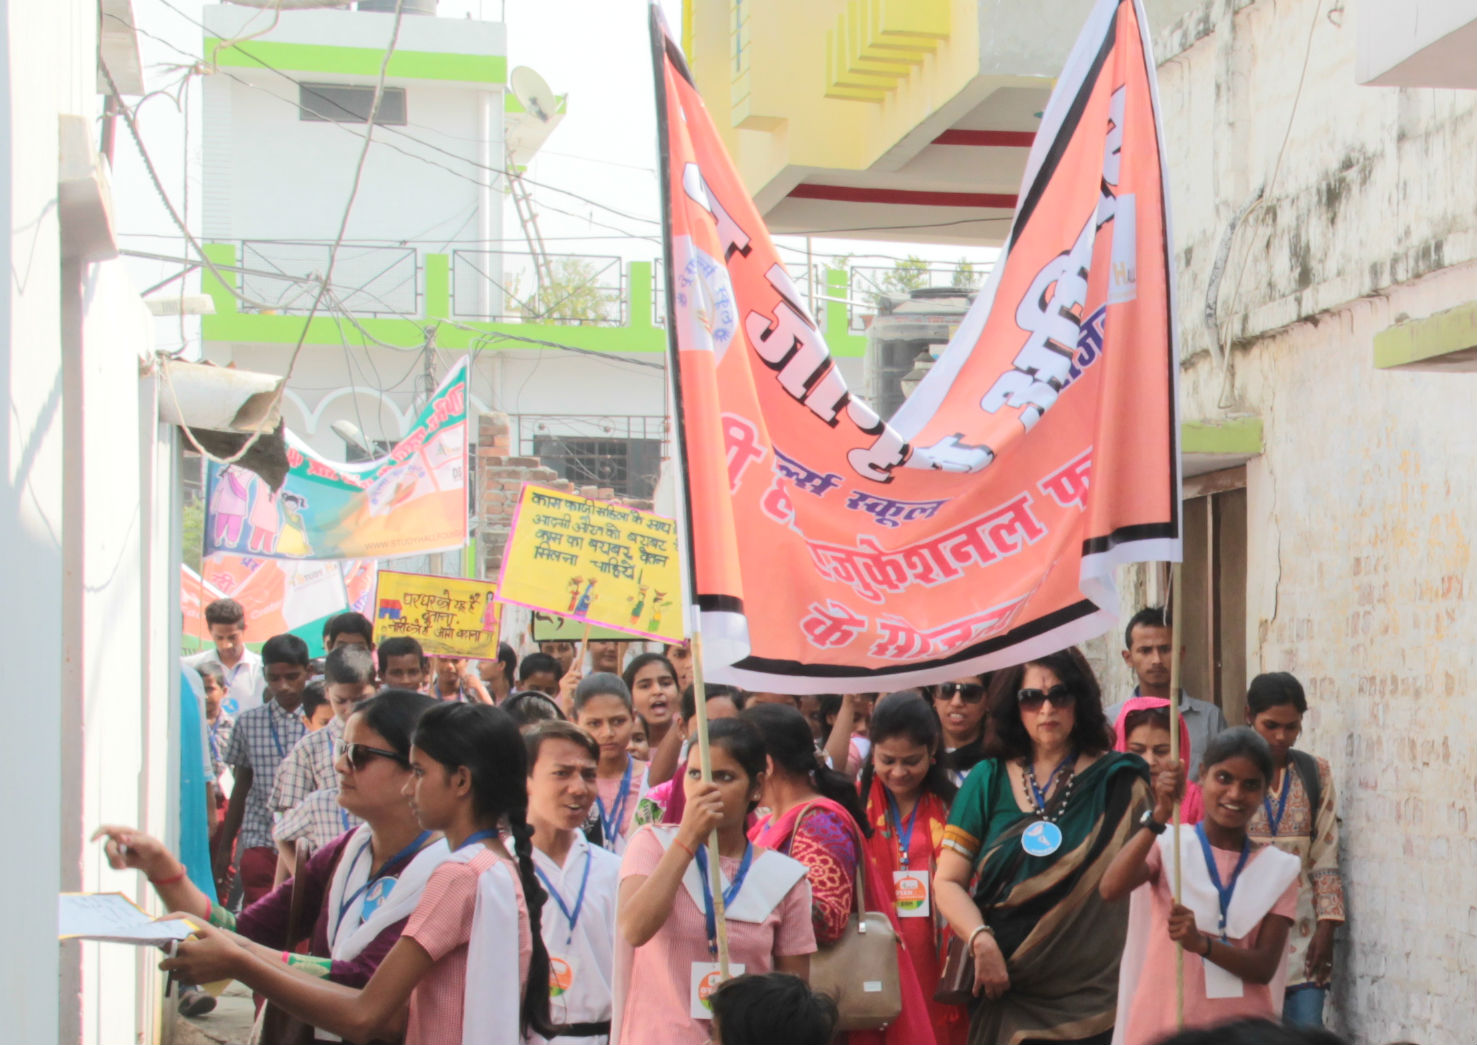 Prena students, led by the school's founder Urvashi Sahni, marching for girls' rights in India